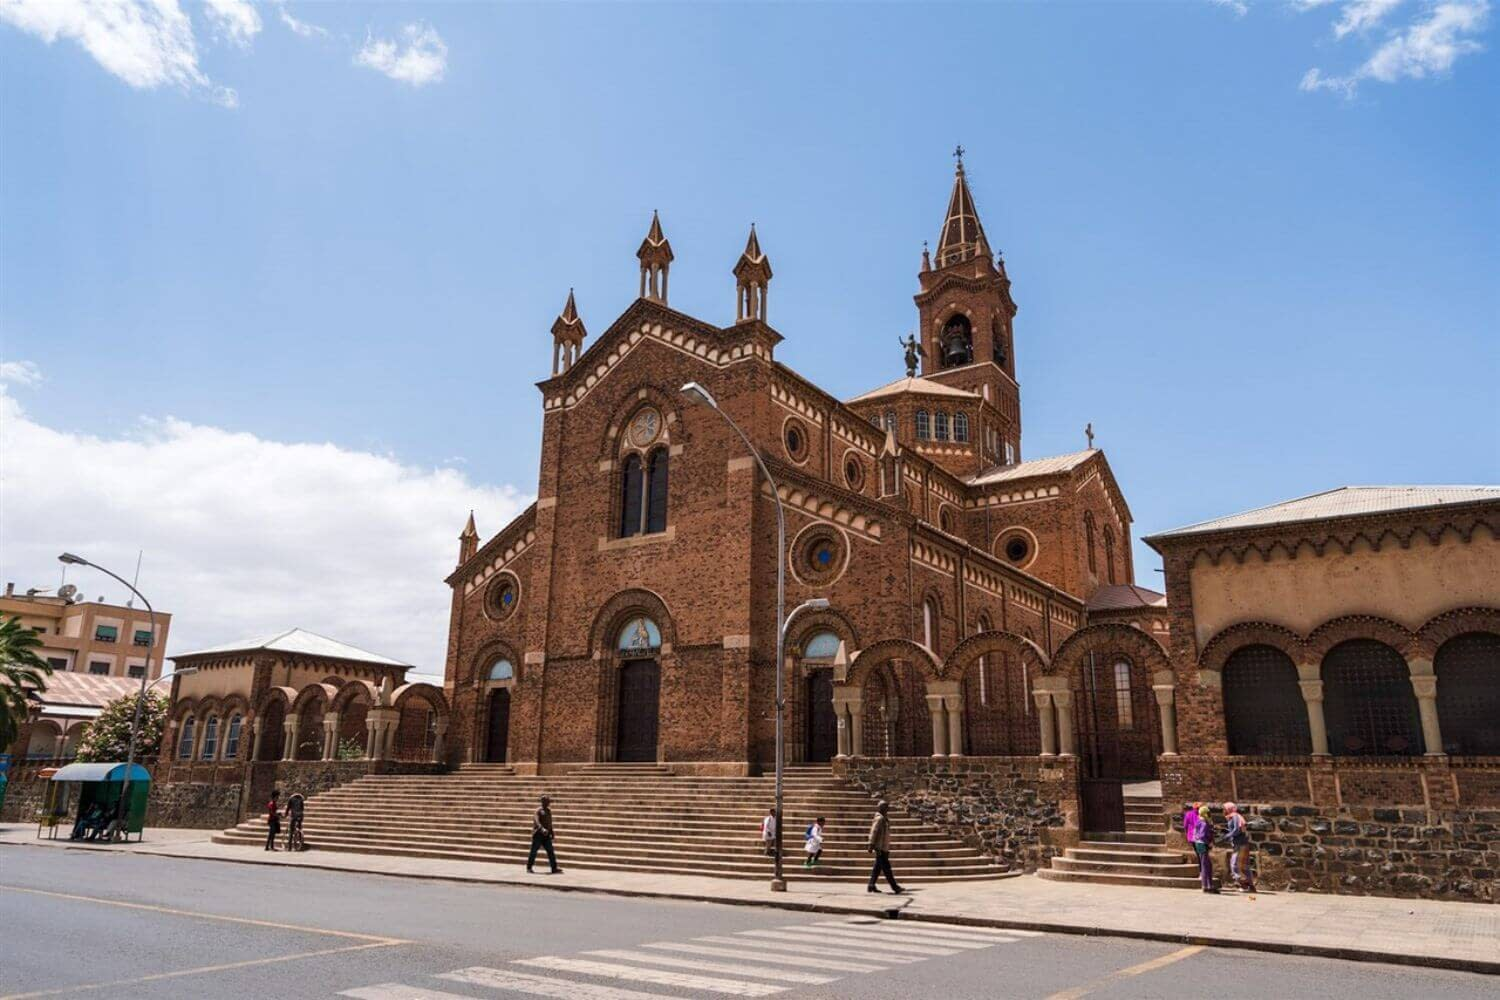 Asmara Roman Catholic church